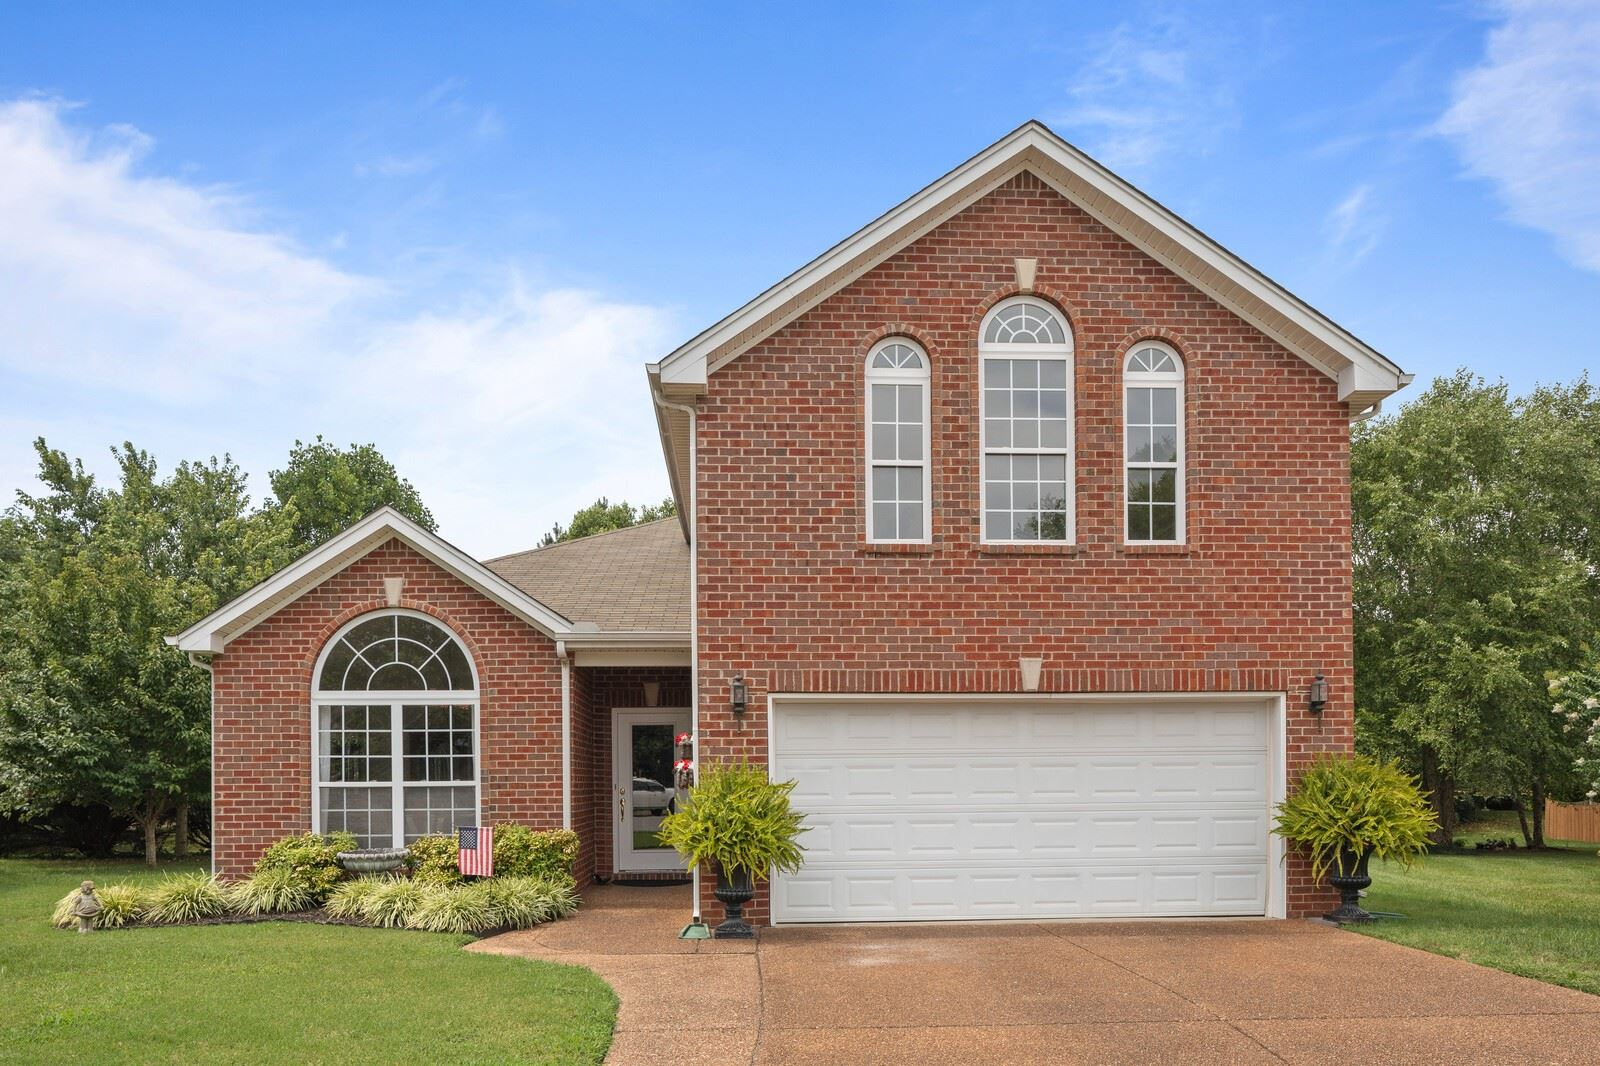 Photo of 408 Eastover Ct, Franklin, TN 37064 (MLS # 2170044)